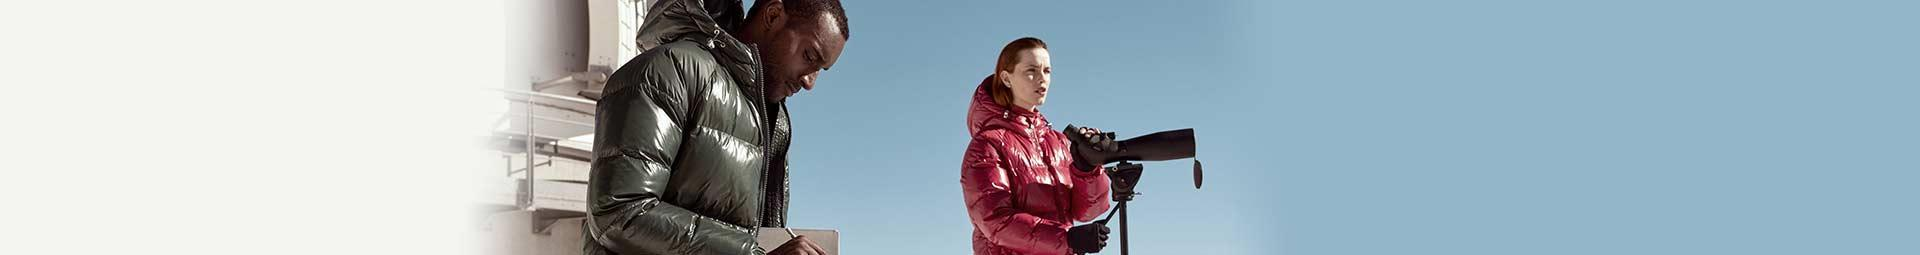 Warm down filled down jackets for man, woman and child - Pyrenex